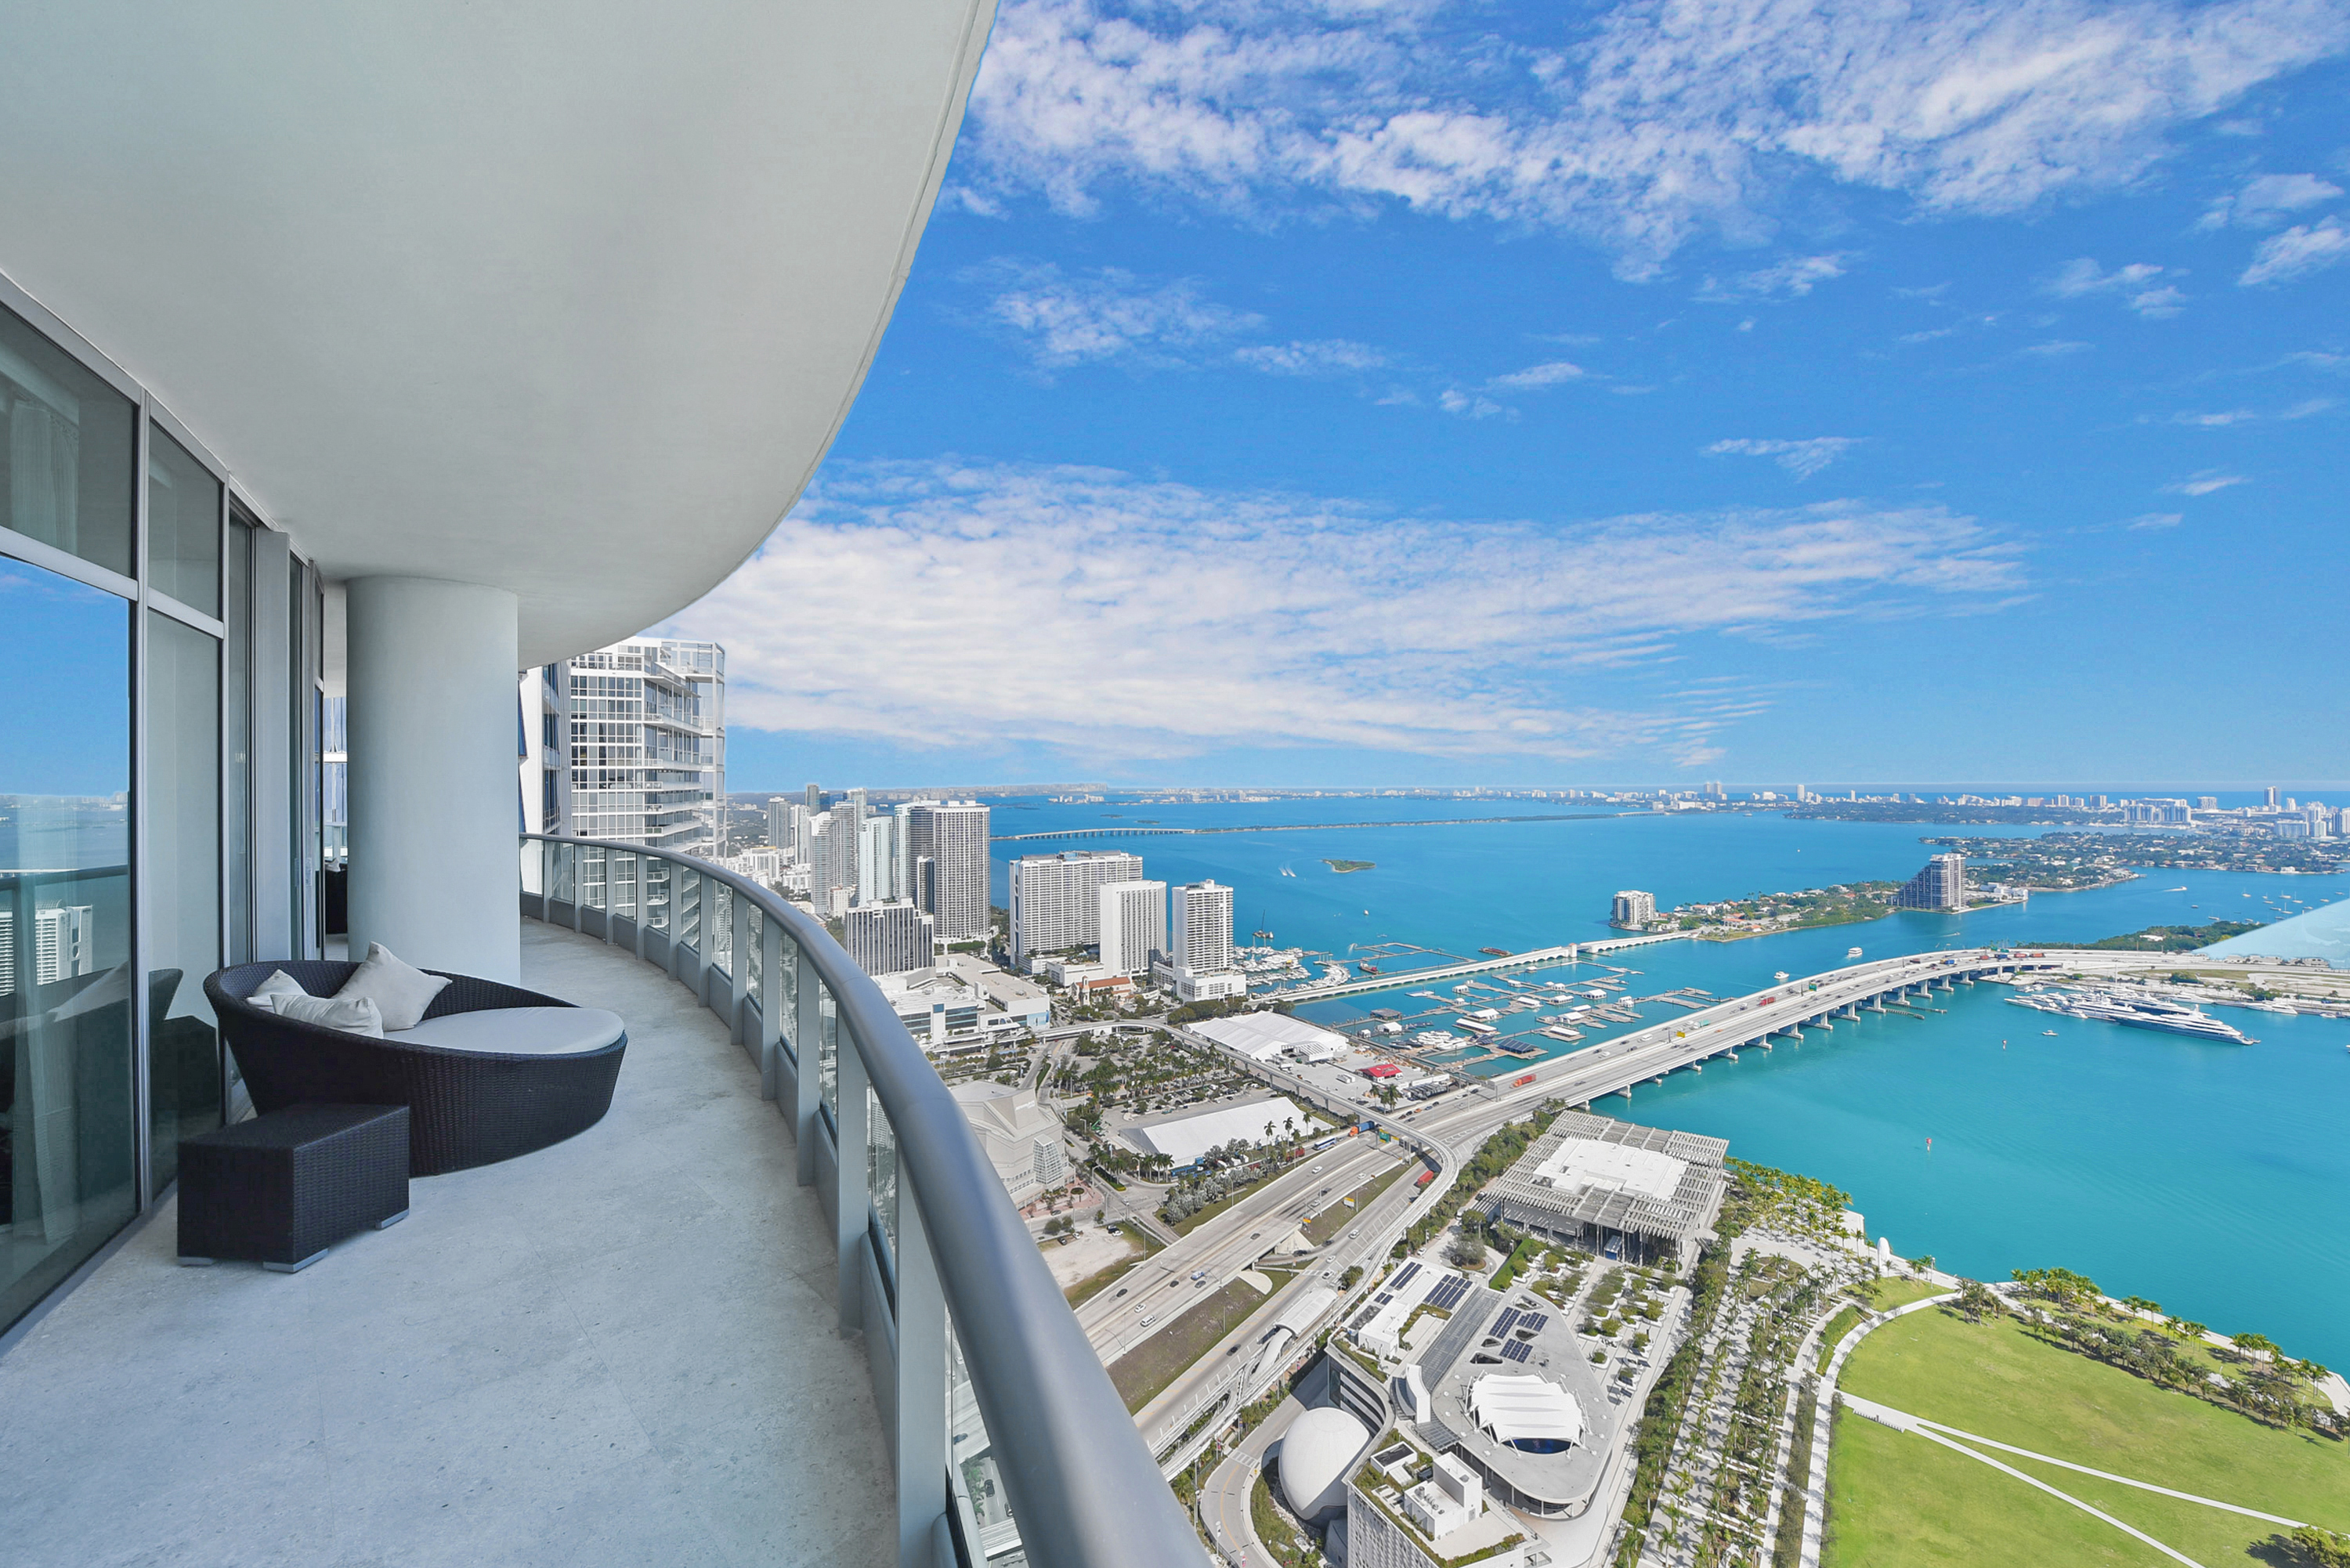 900 Biscayne Bay Penthouse 6307 Entertainment Terrace